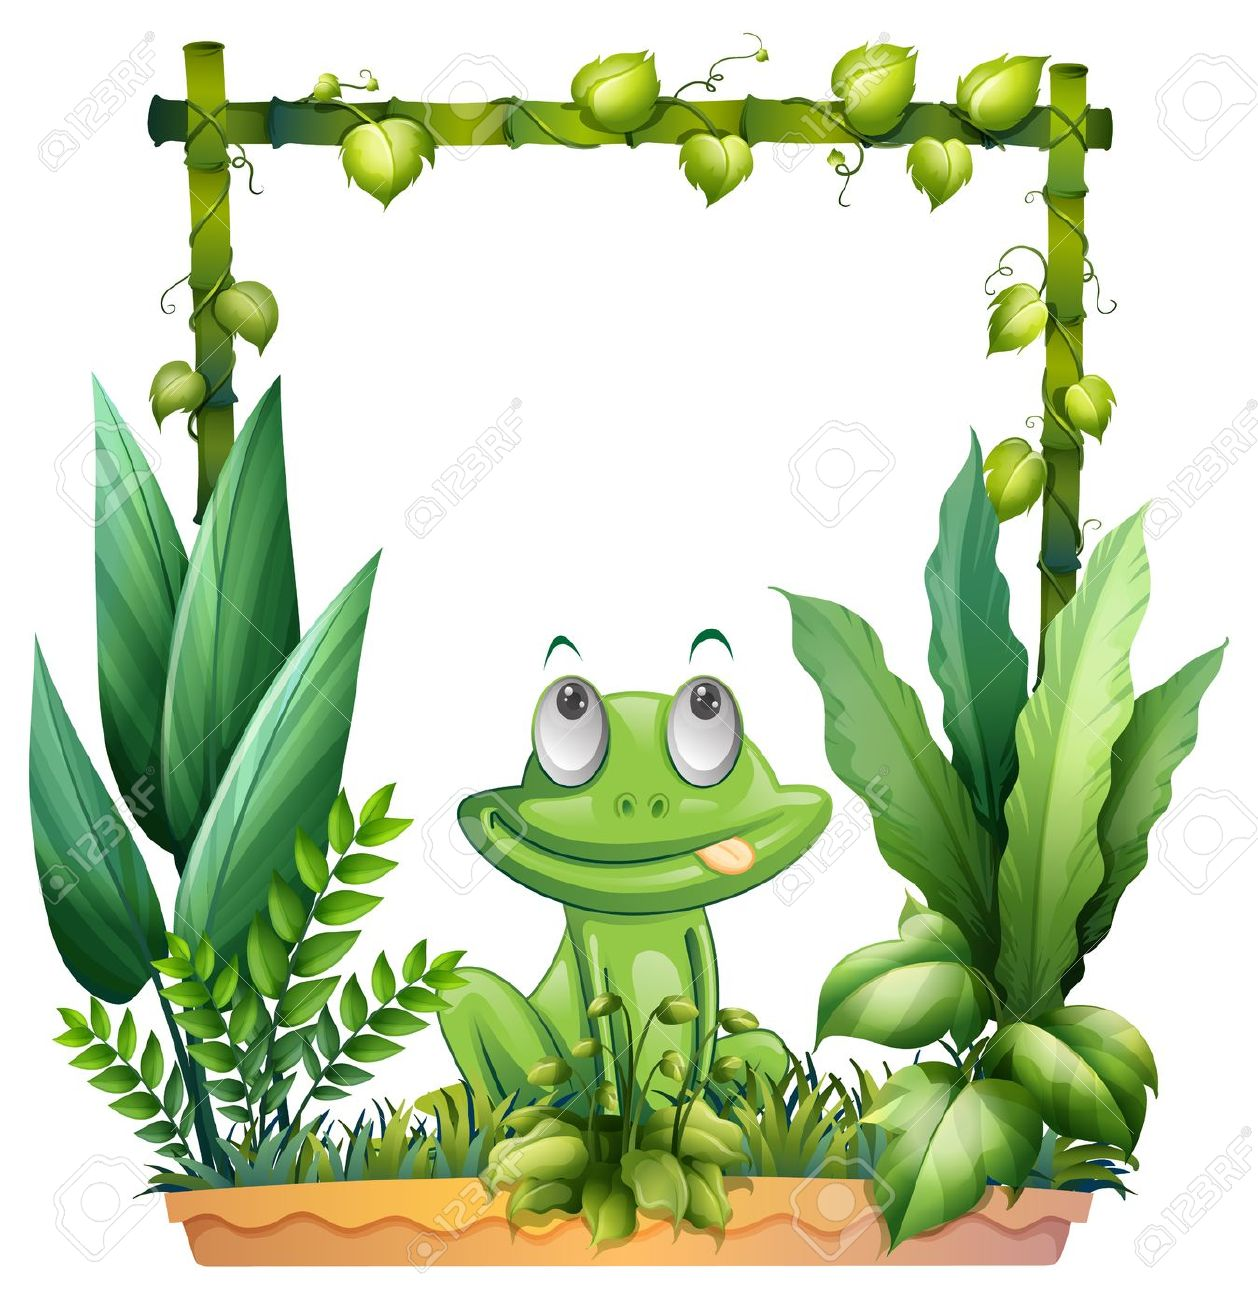 26,624 Frog Stock Vector Illustration And Royalty Free Frog Clipart.